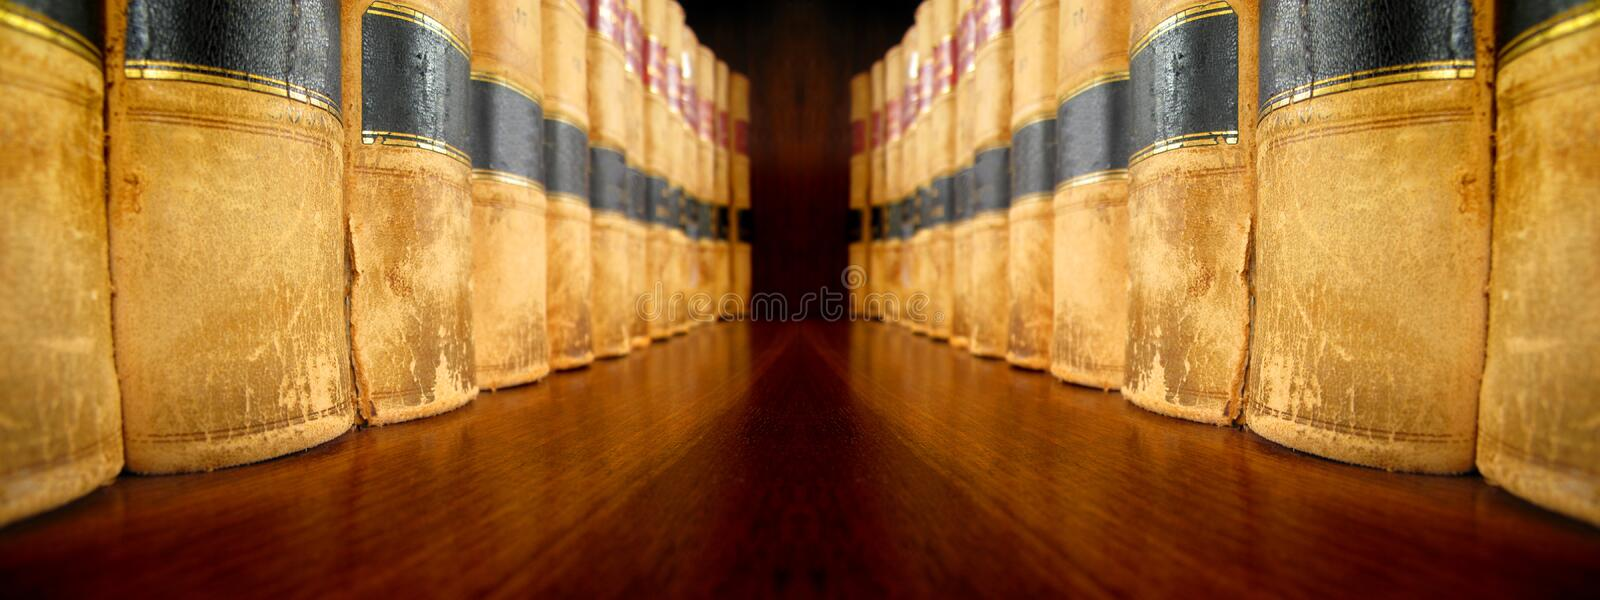 Law Books on Shelves facing each other stock photos